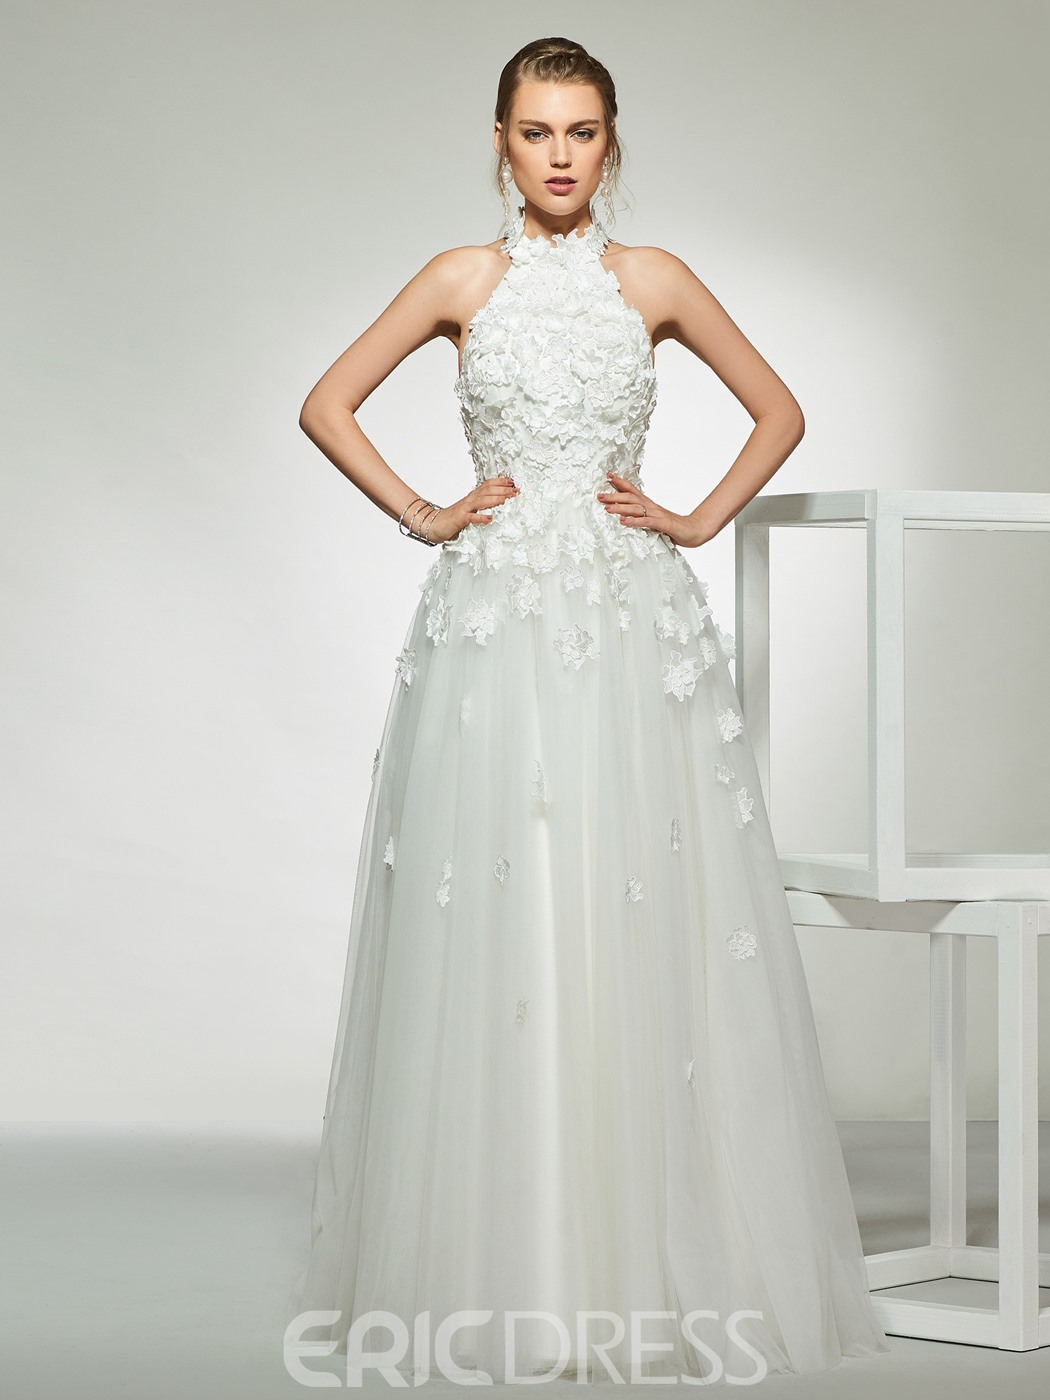 Ericdress Halter Flowers Appliques Wedding Dress